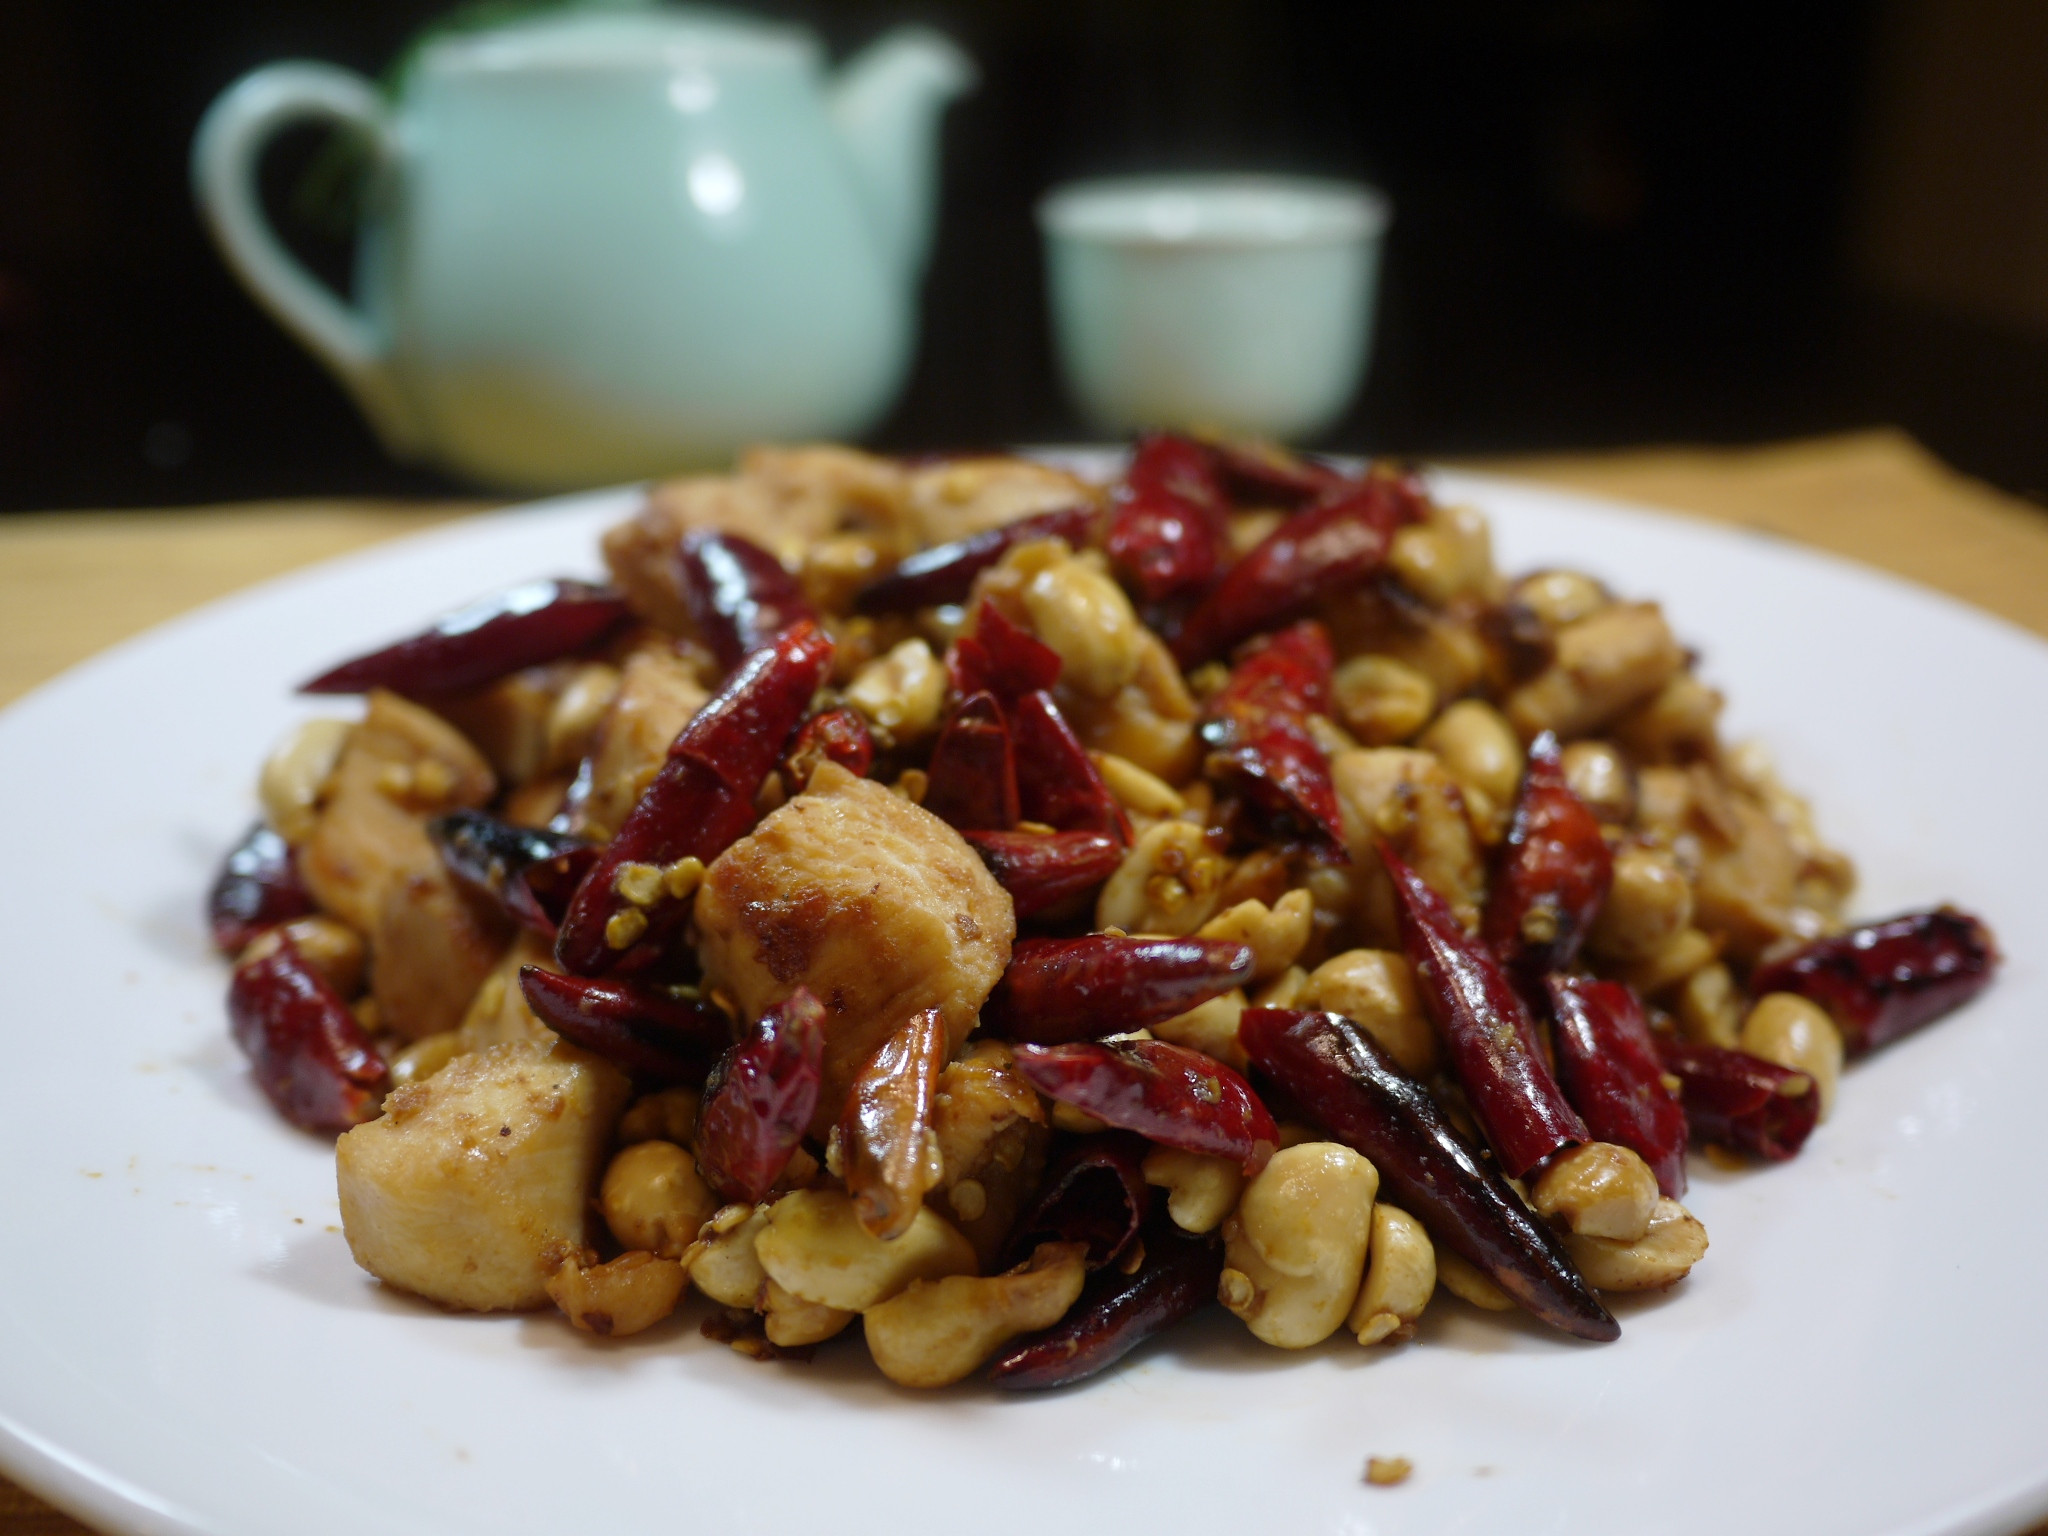 Easy Chinese Recipes  Quick and Easy Kung Pao Chicken 宮保雞丁 Easy Chinese Recipes